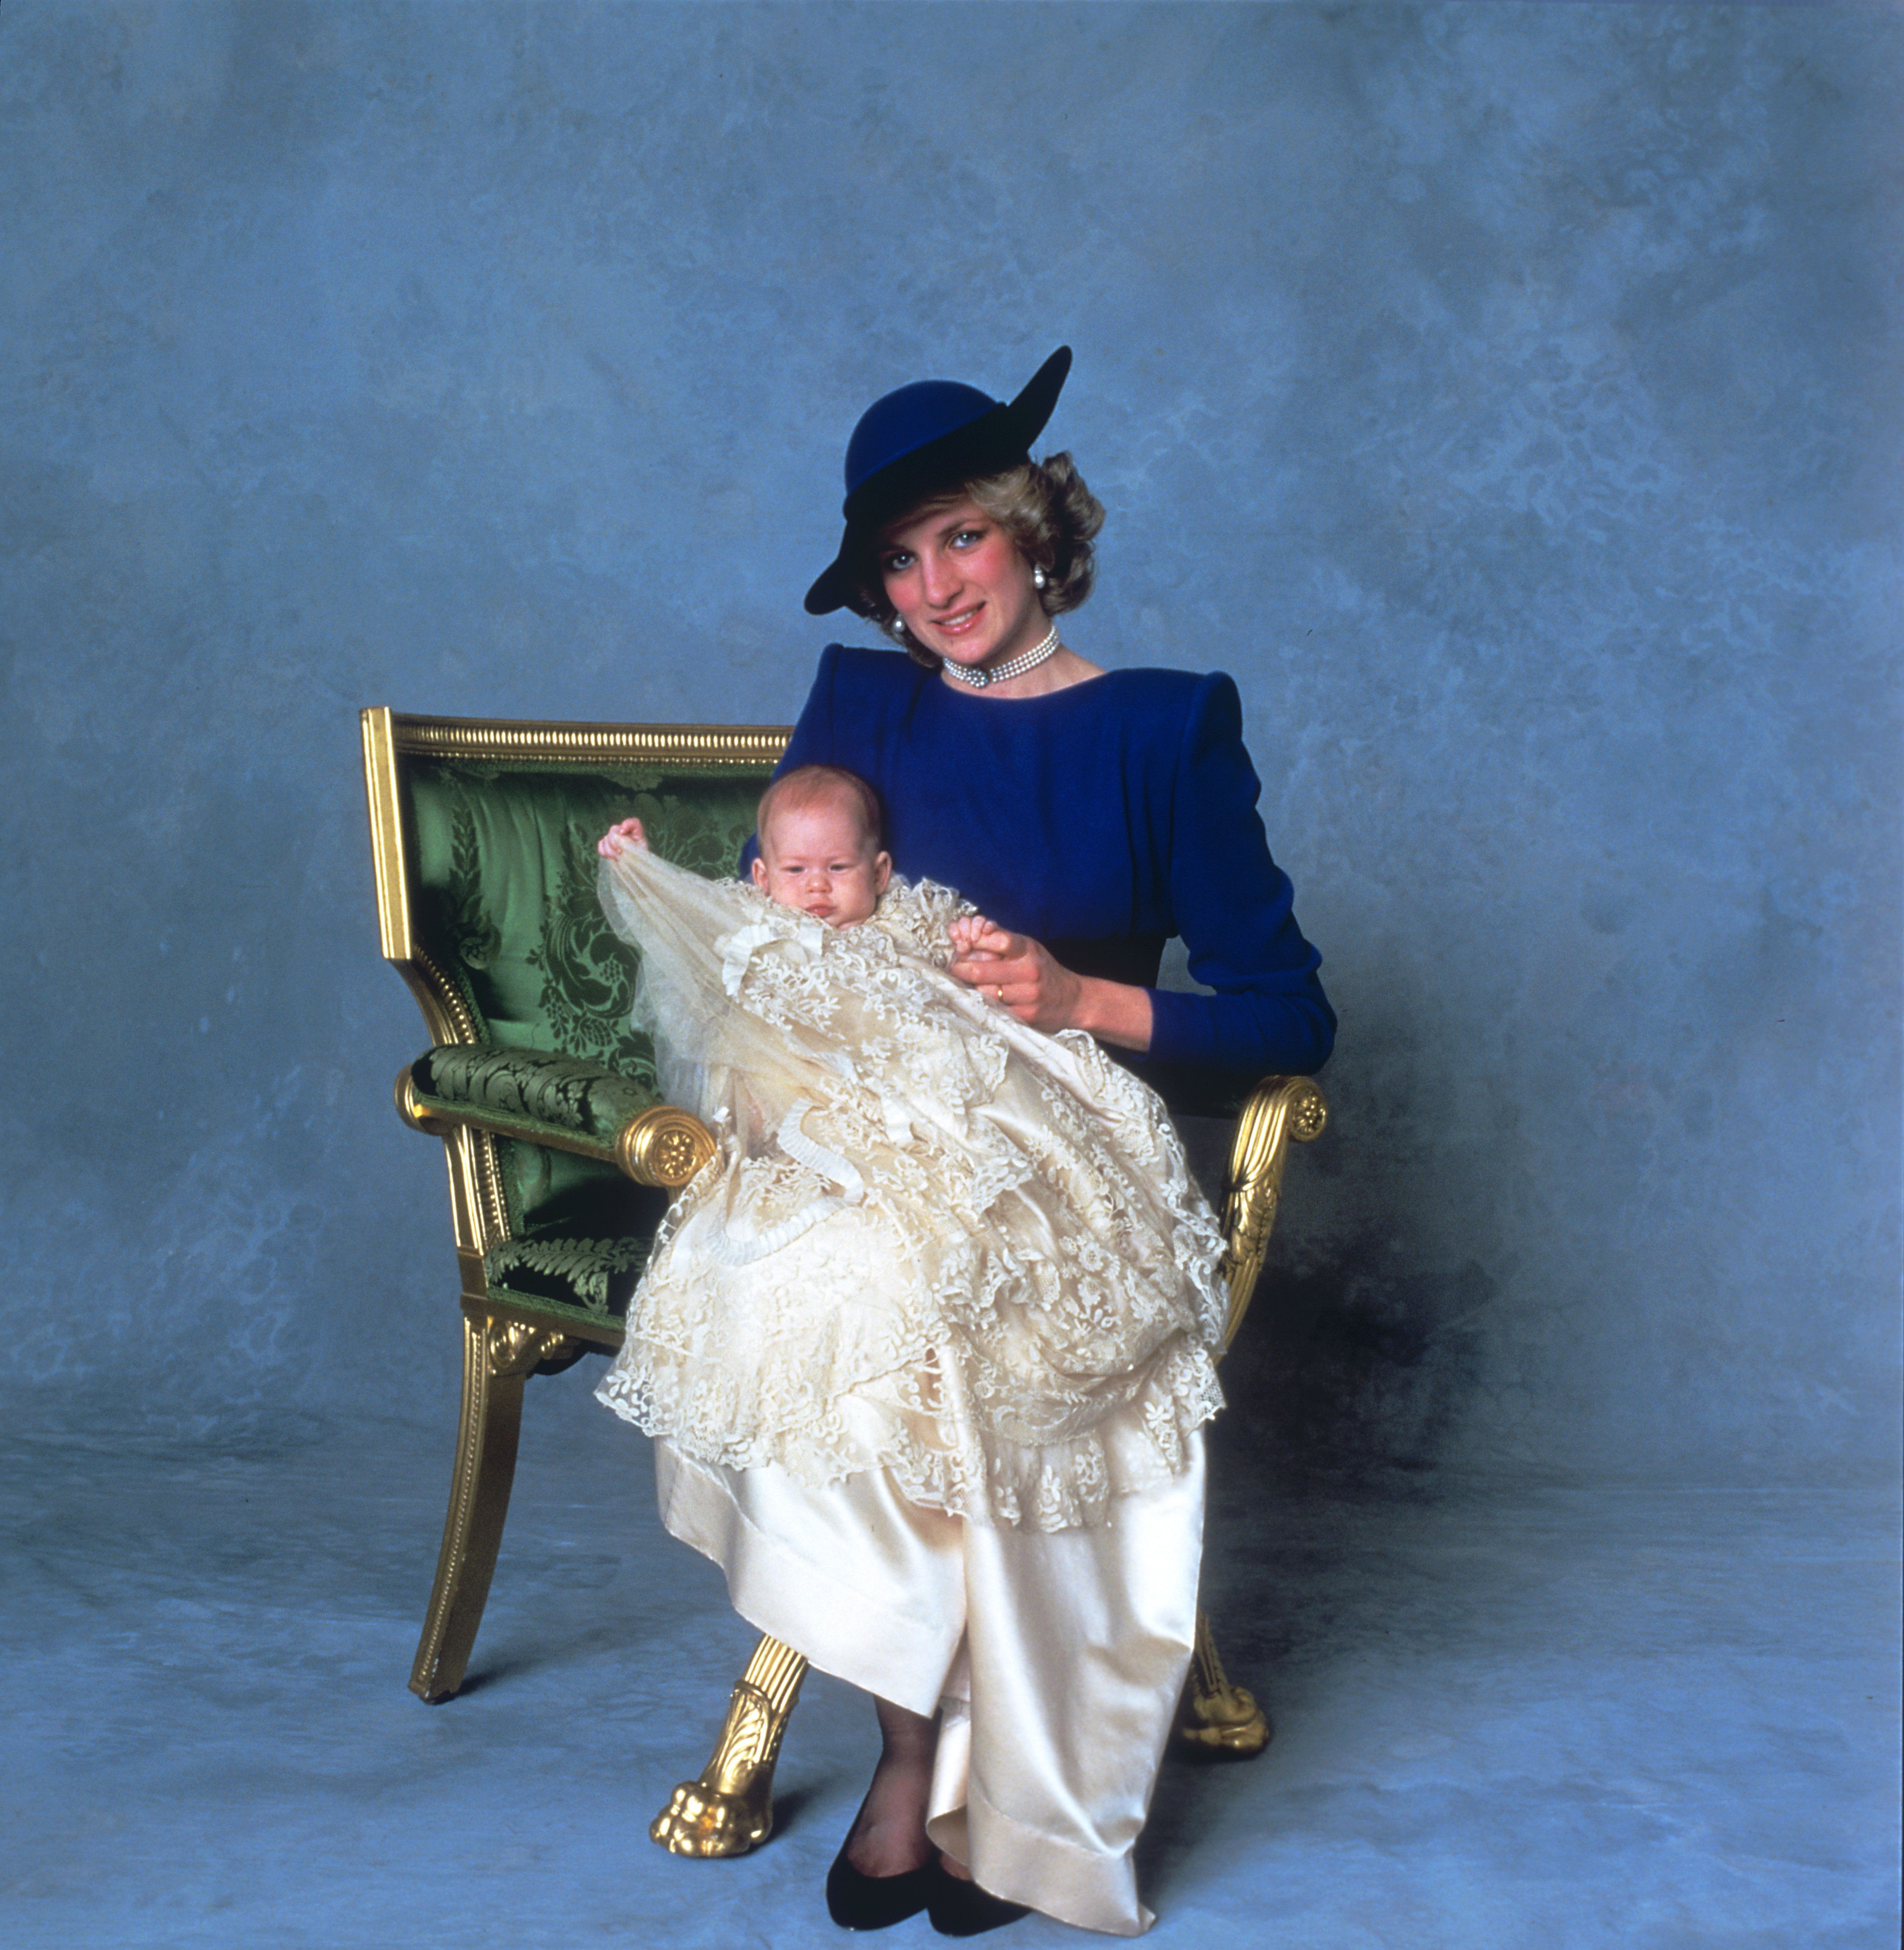 Princess Diana holds Prince Harry onthe day of his christeningonDec. 21, 1984.